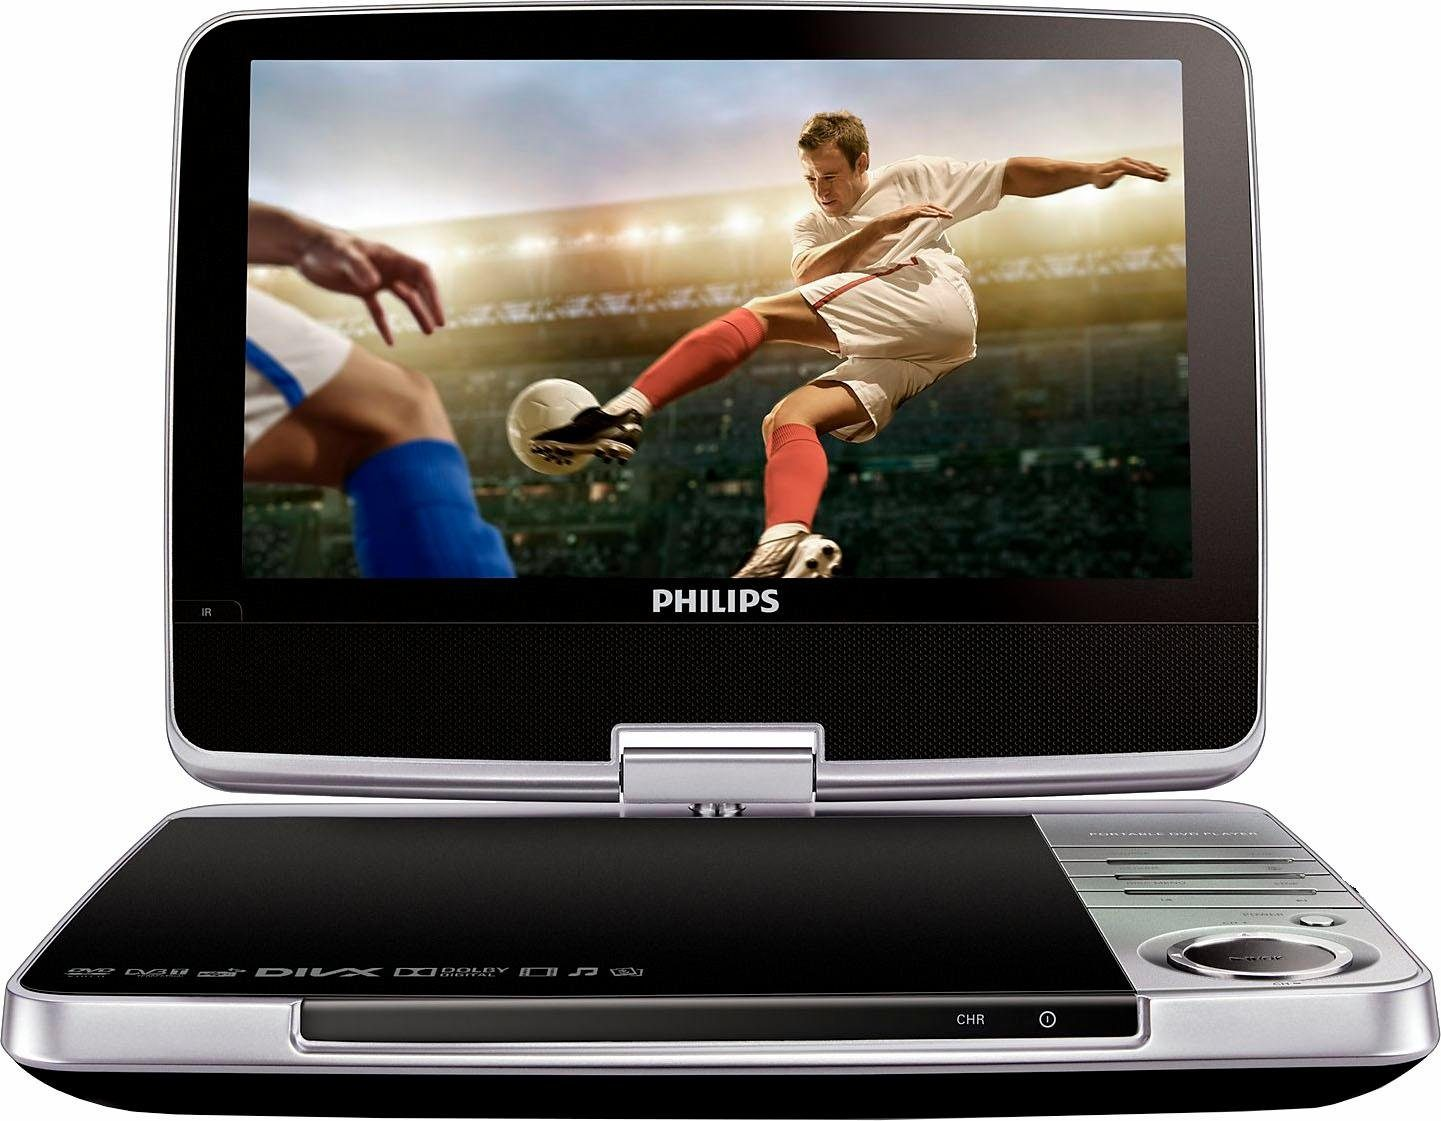 Philips PD9025 tragbarer DVD-Player